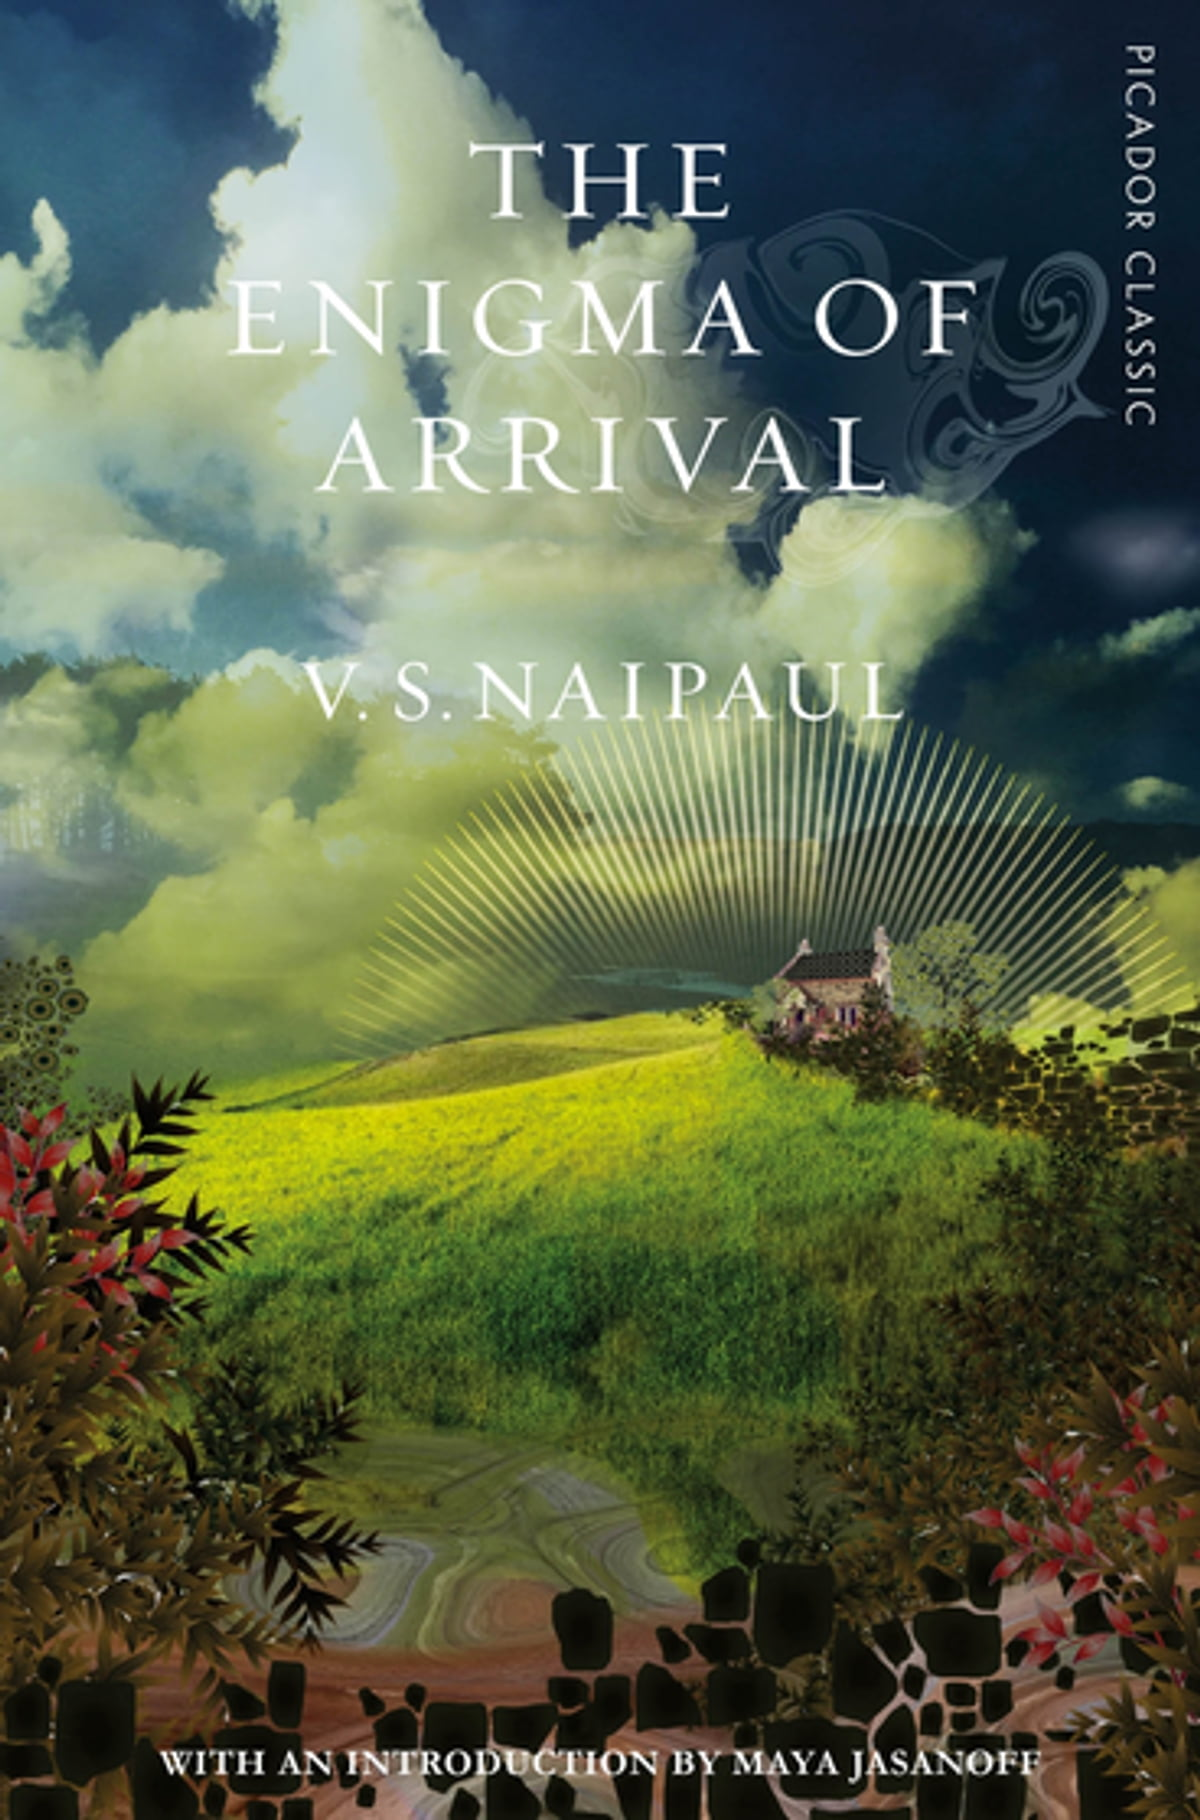 the enigma of arrival by vs naipaul free download